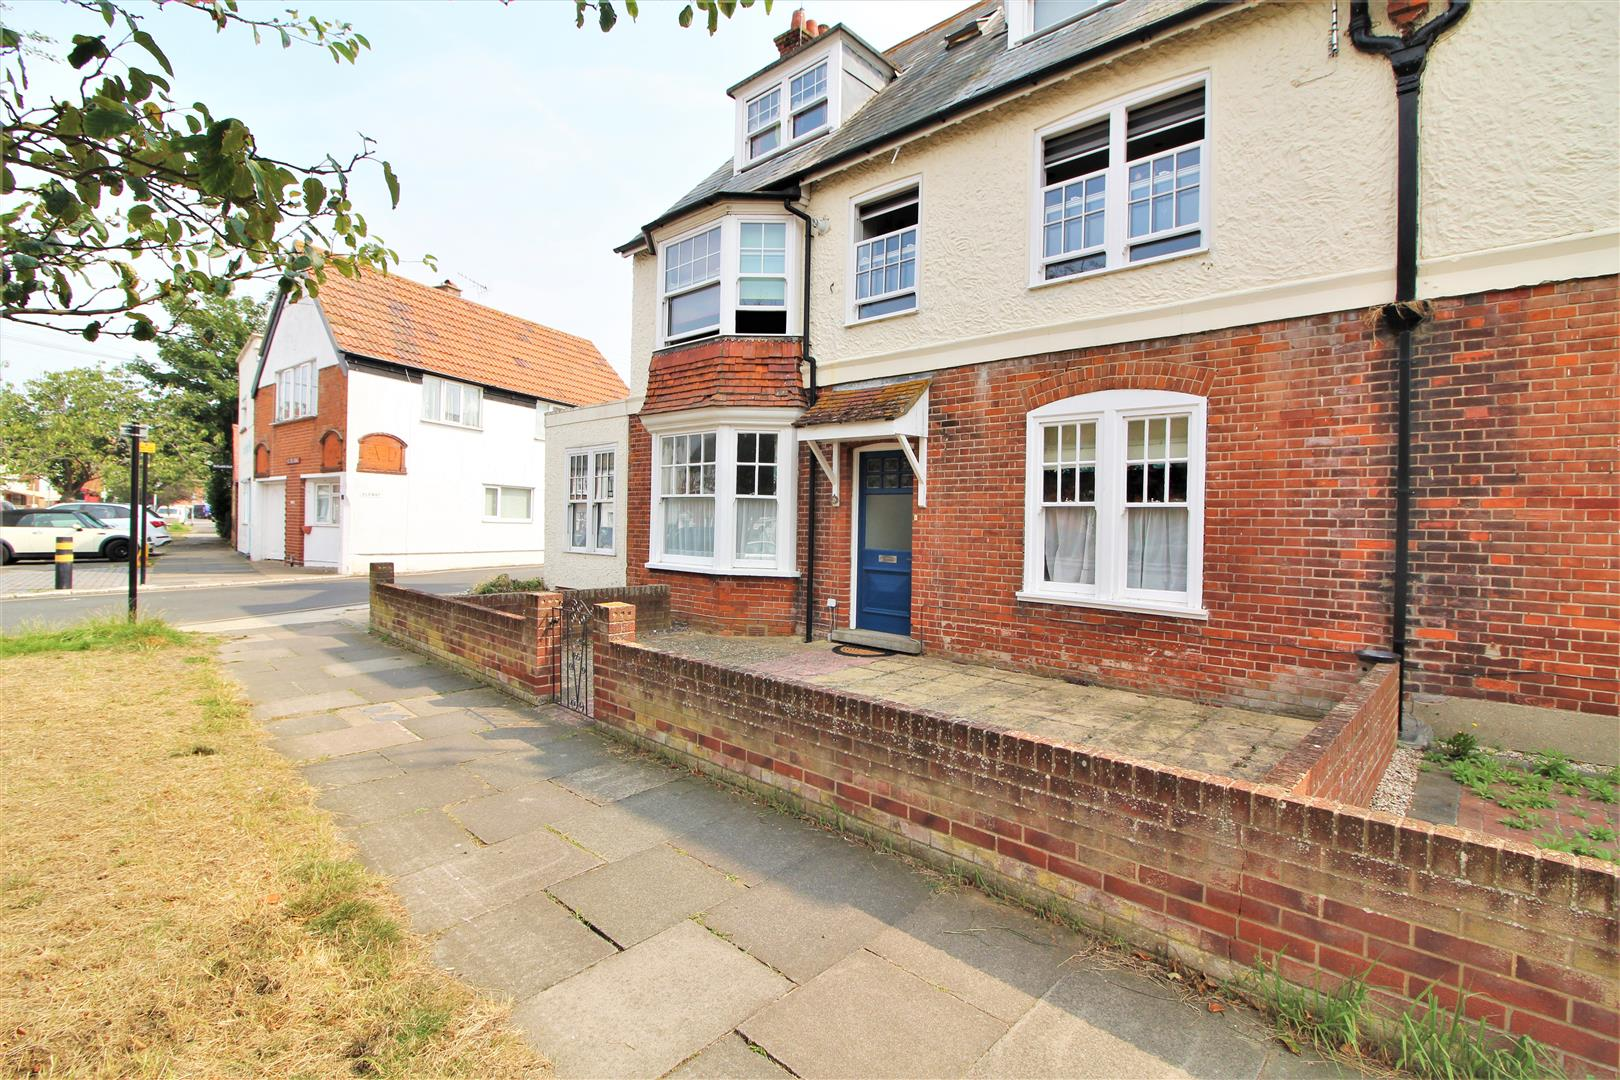 Old Road, Frinton-On-Sea, Essex, CO13 9BY